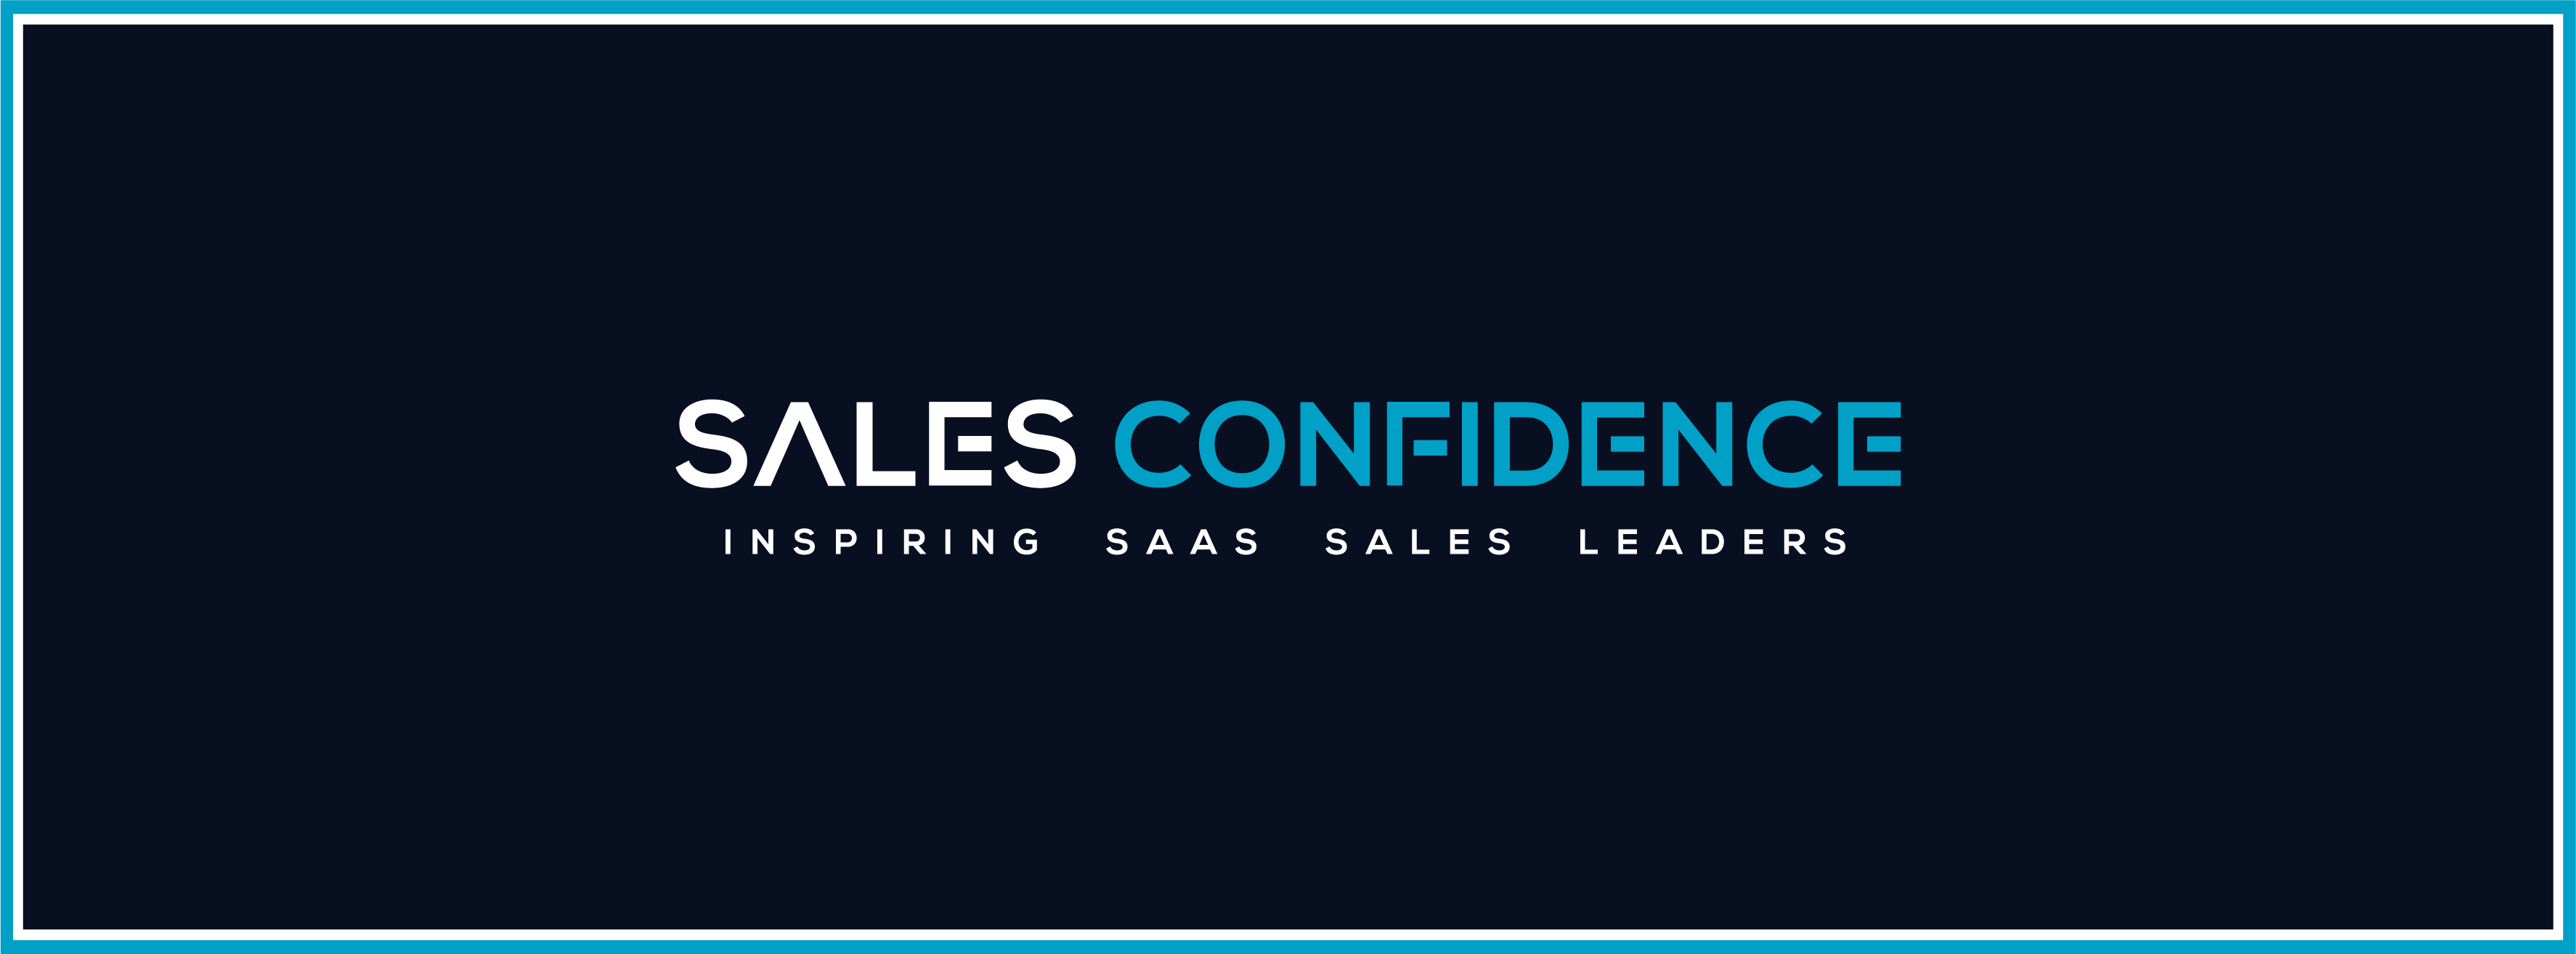 Sales Confidence - Sales Leaders and Managers - [Open] B2B SaaS Sales Evening Event - London